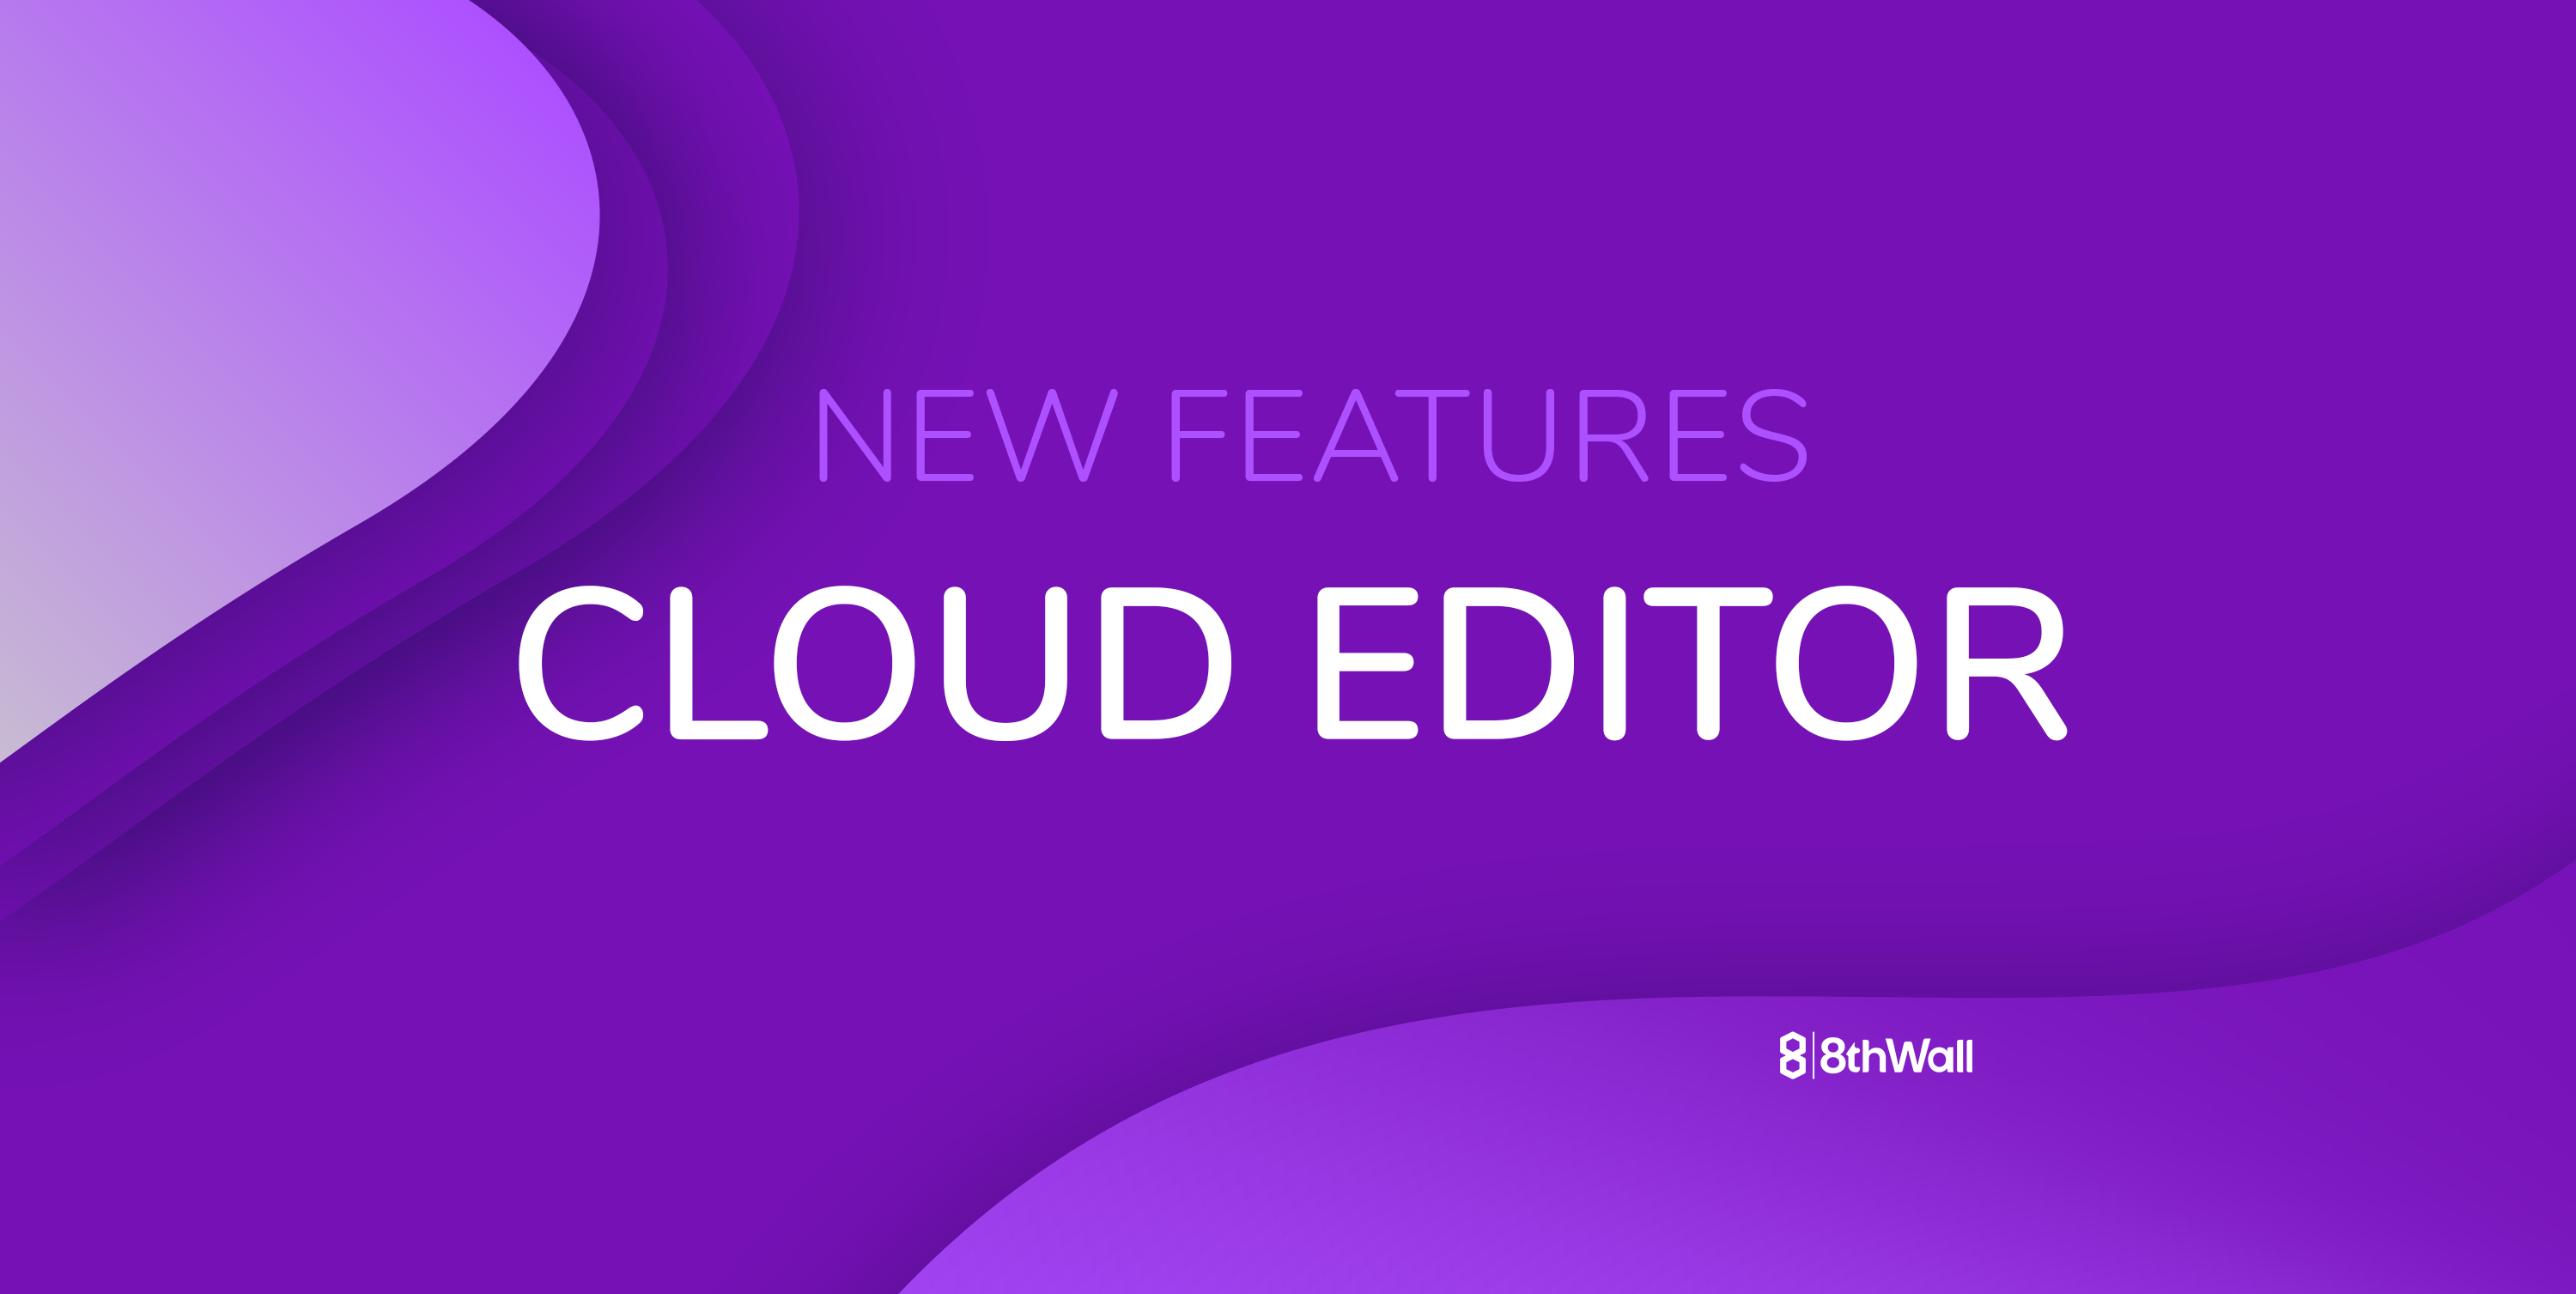 8th Wall developers get new superpowers with powerful new cloud editor features